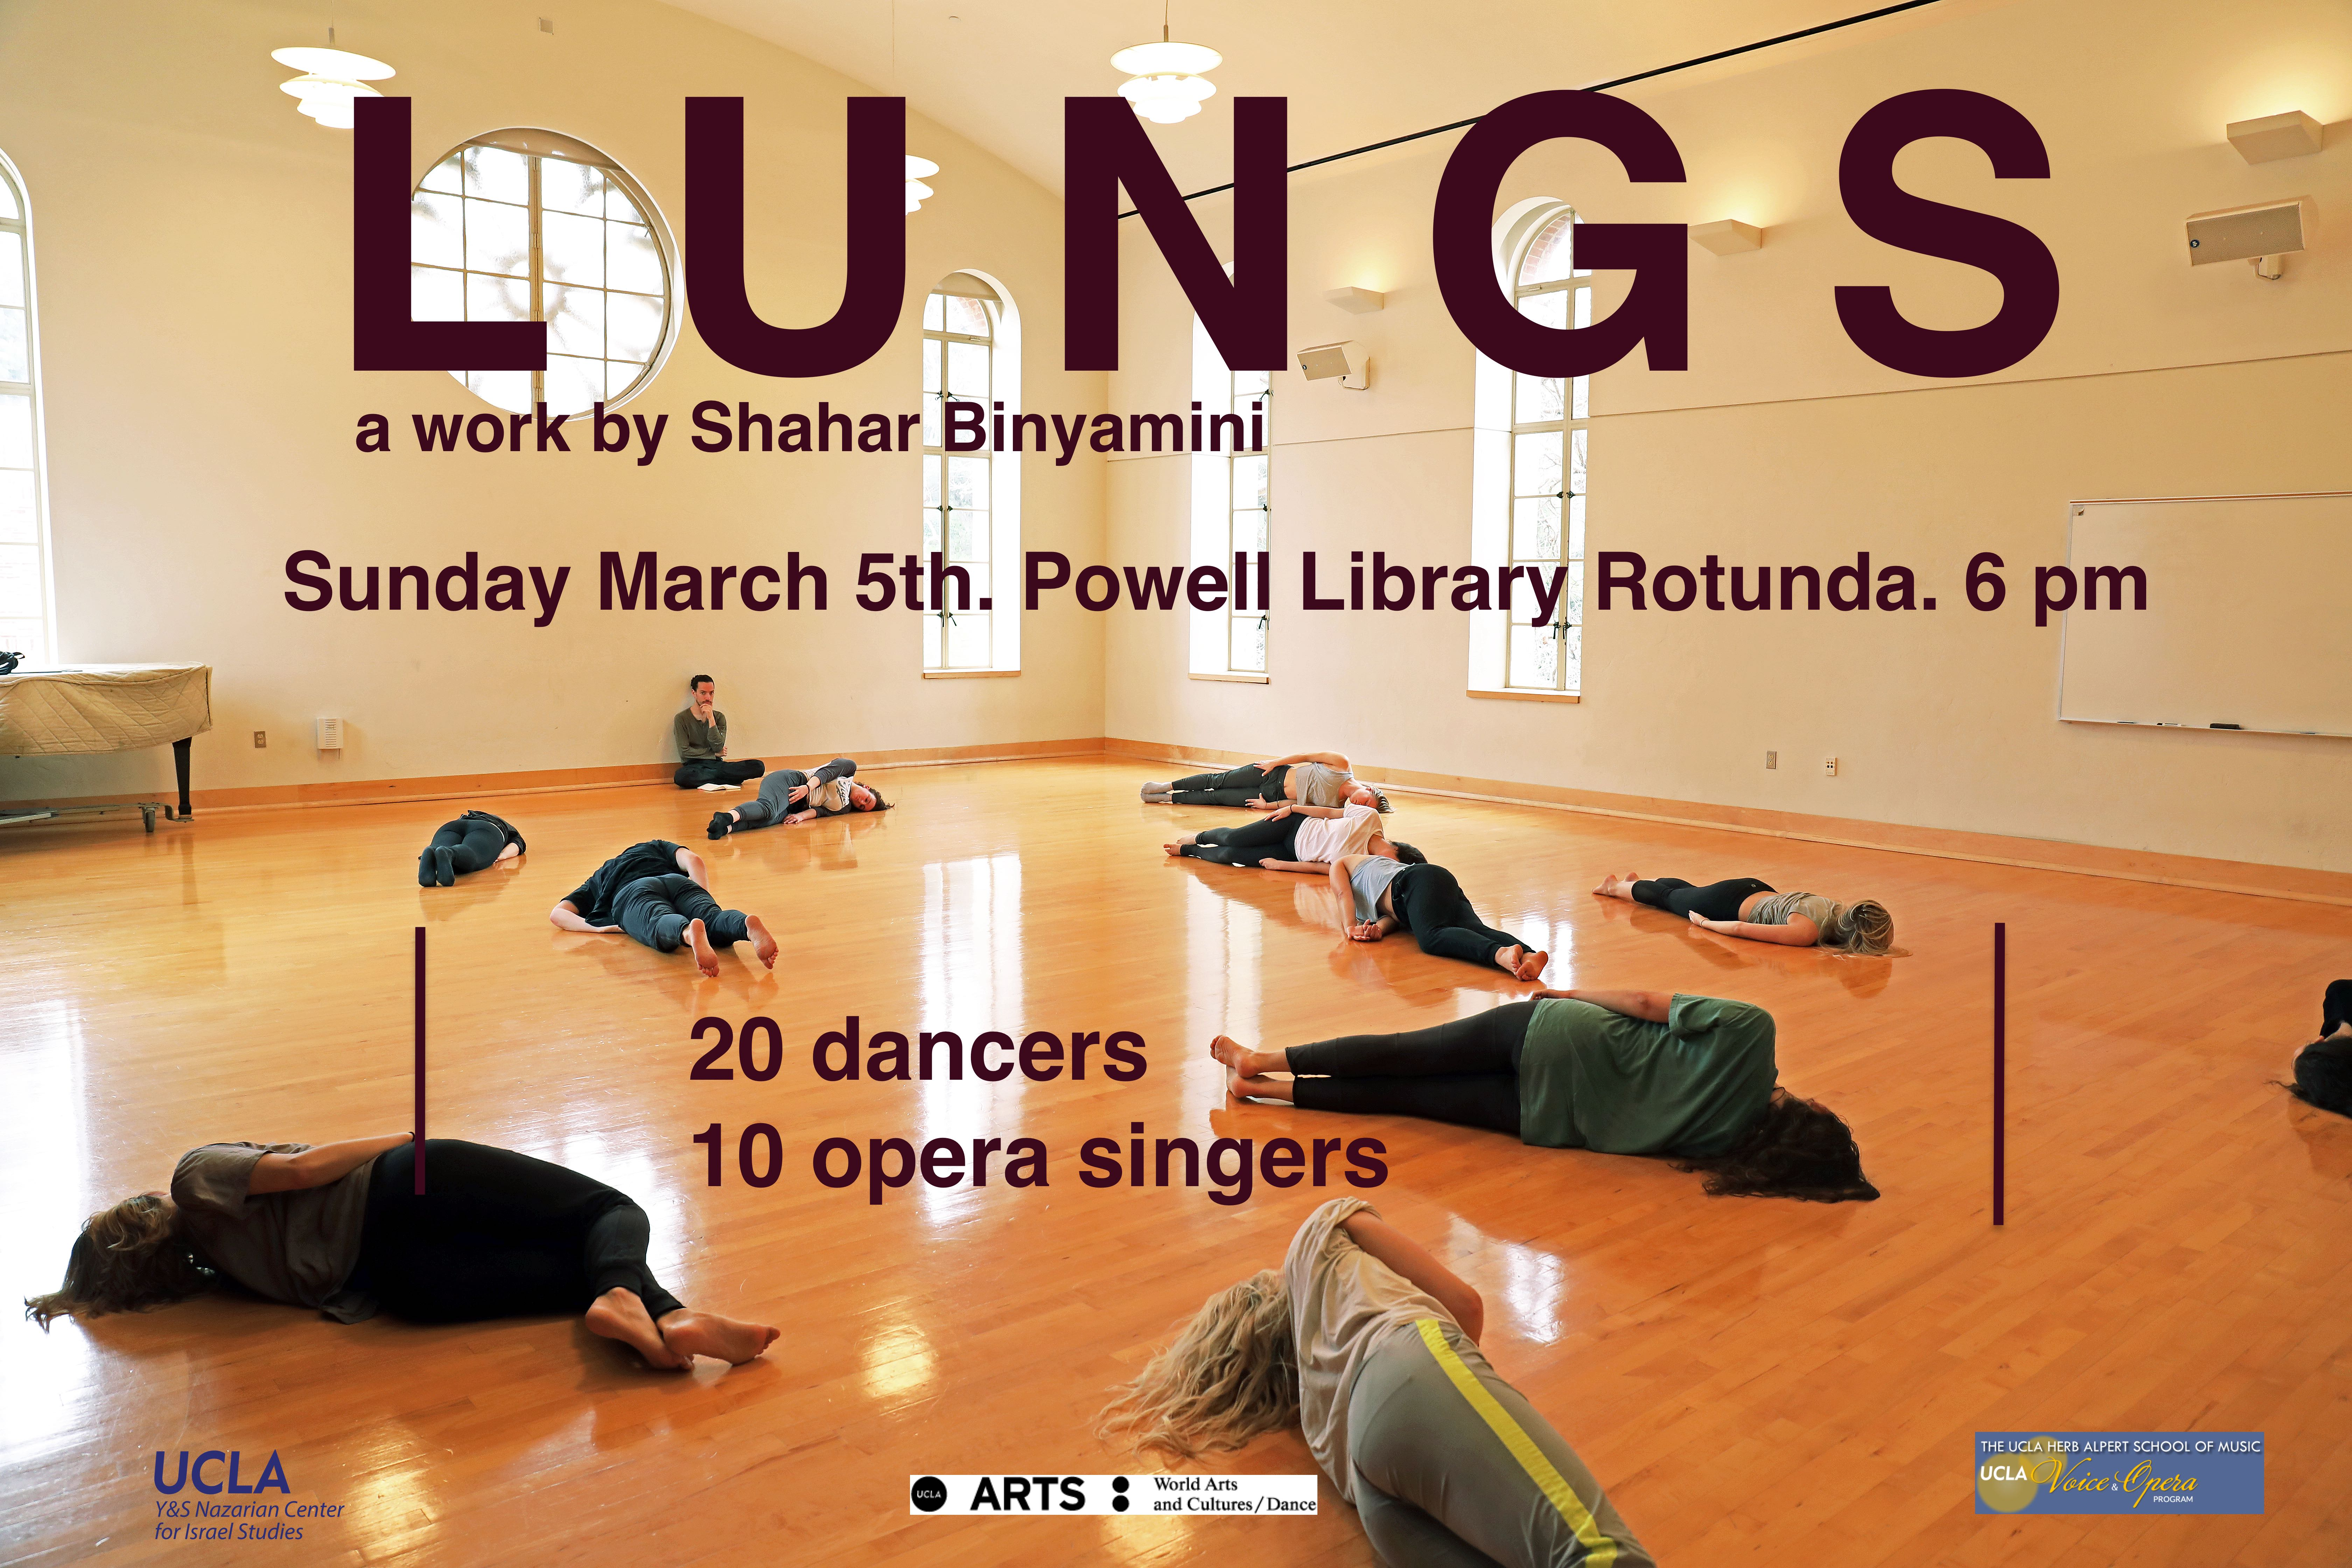 Flyer for L U N G S performance. Photograph of several people lying prone on the floor of a dance studio, with one person sitting observing them.